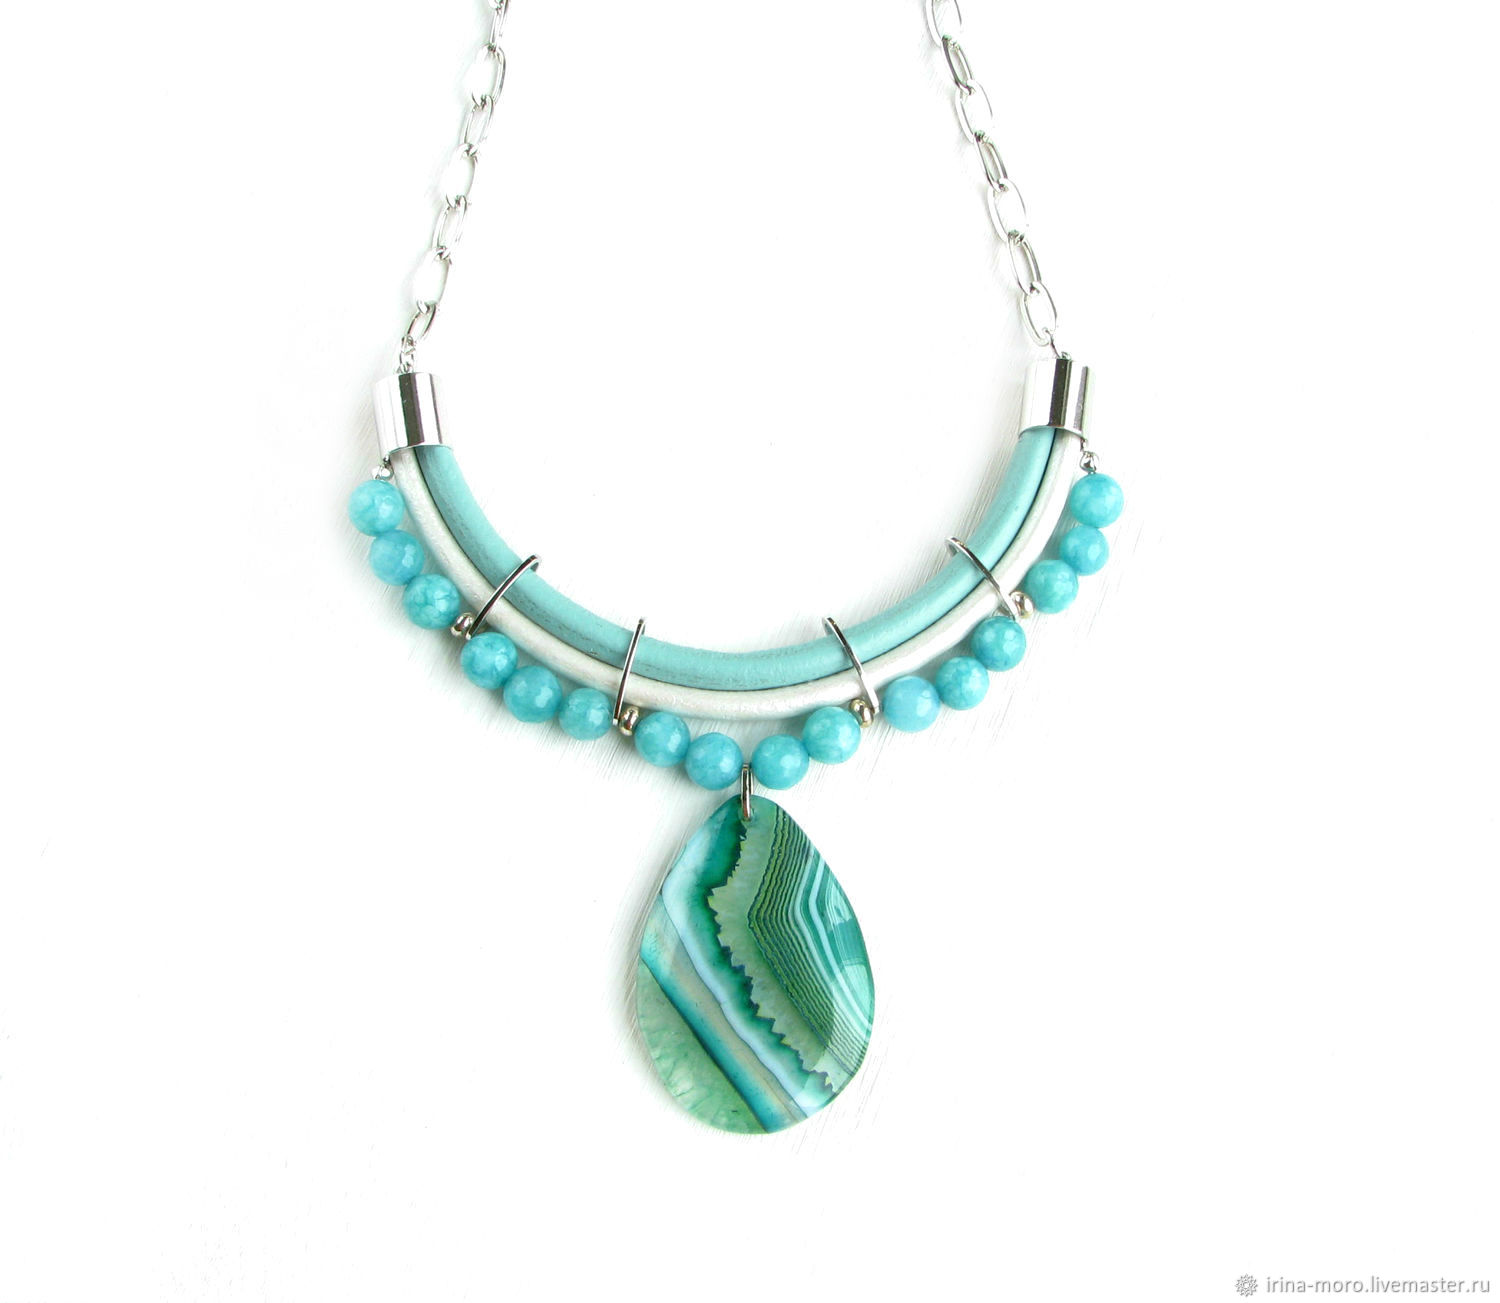 Turquoise necklace with 'Turquoise mood' pendant with agate, Necklace, Moscow,  Фото №1